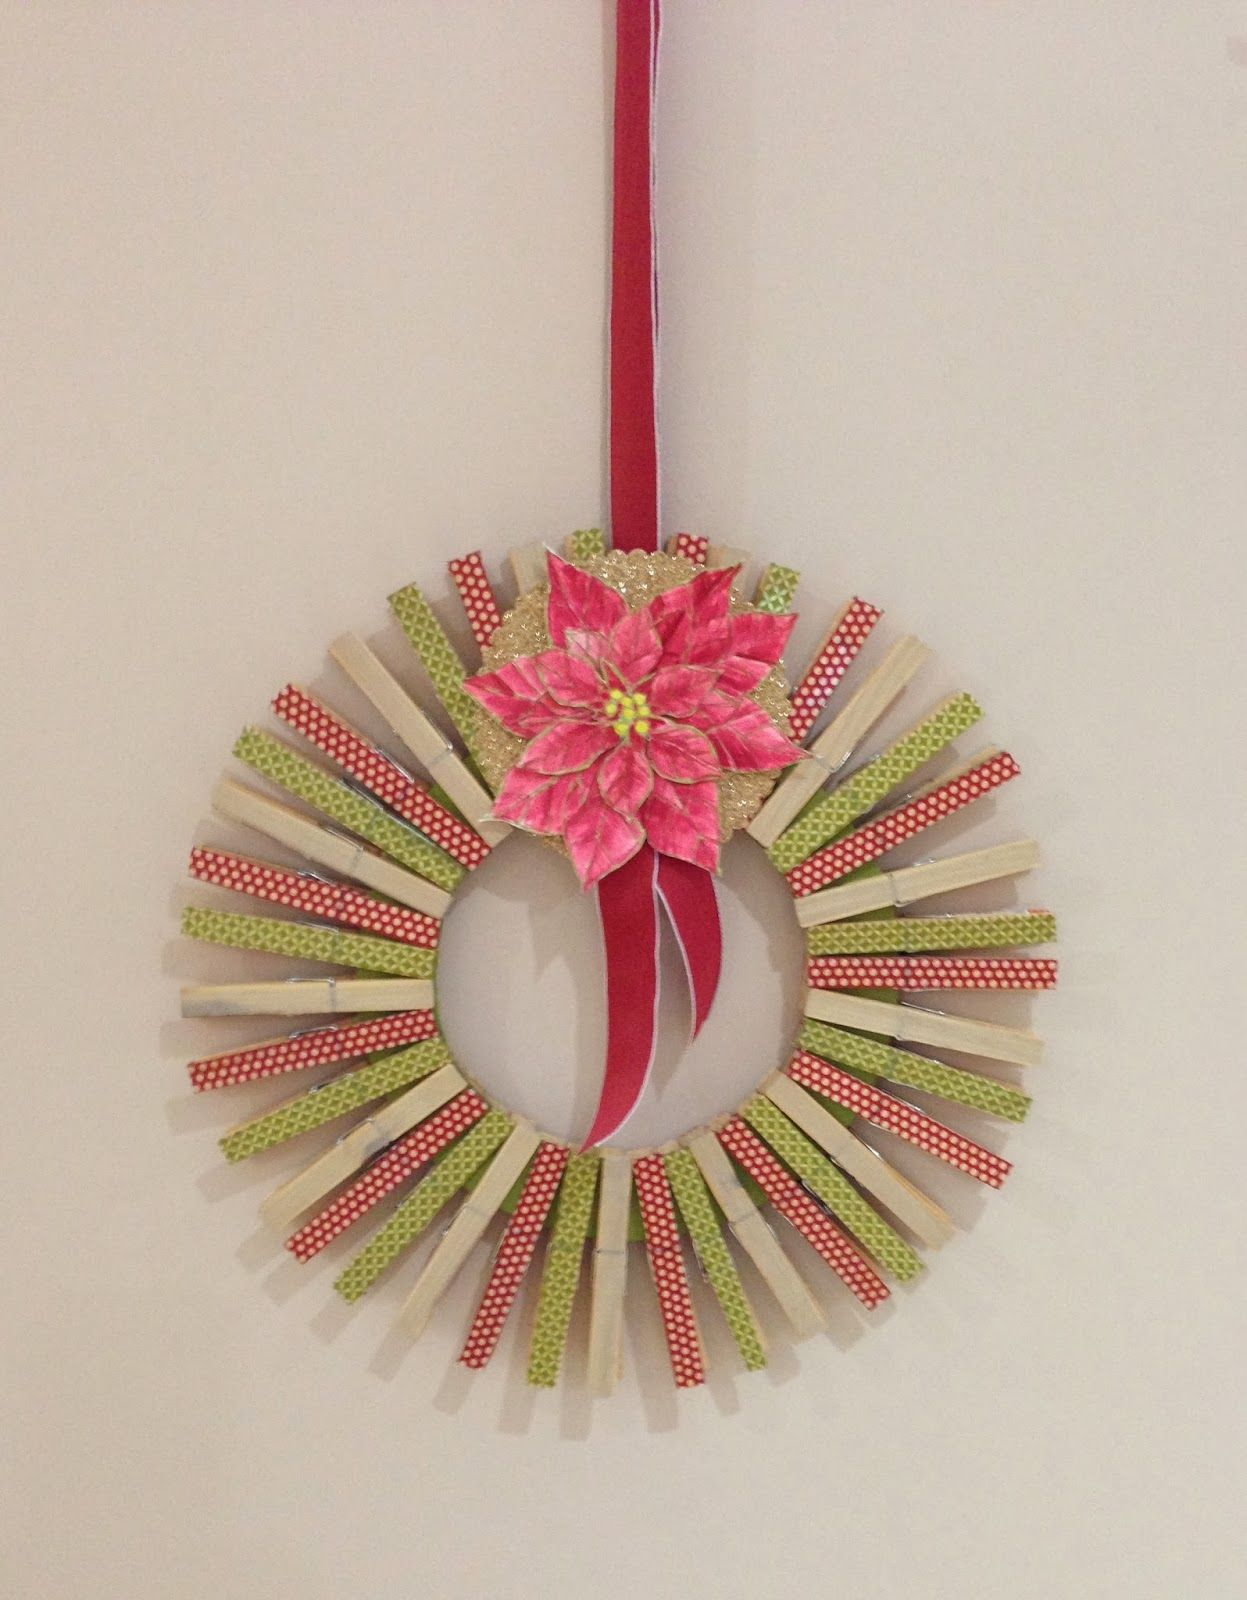 20 Beautiful Washi Tape Christmas Craft Ideas  Mums Make